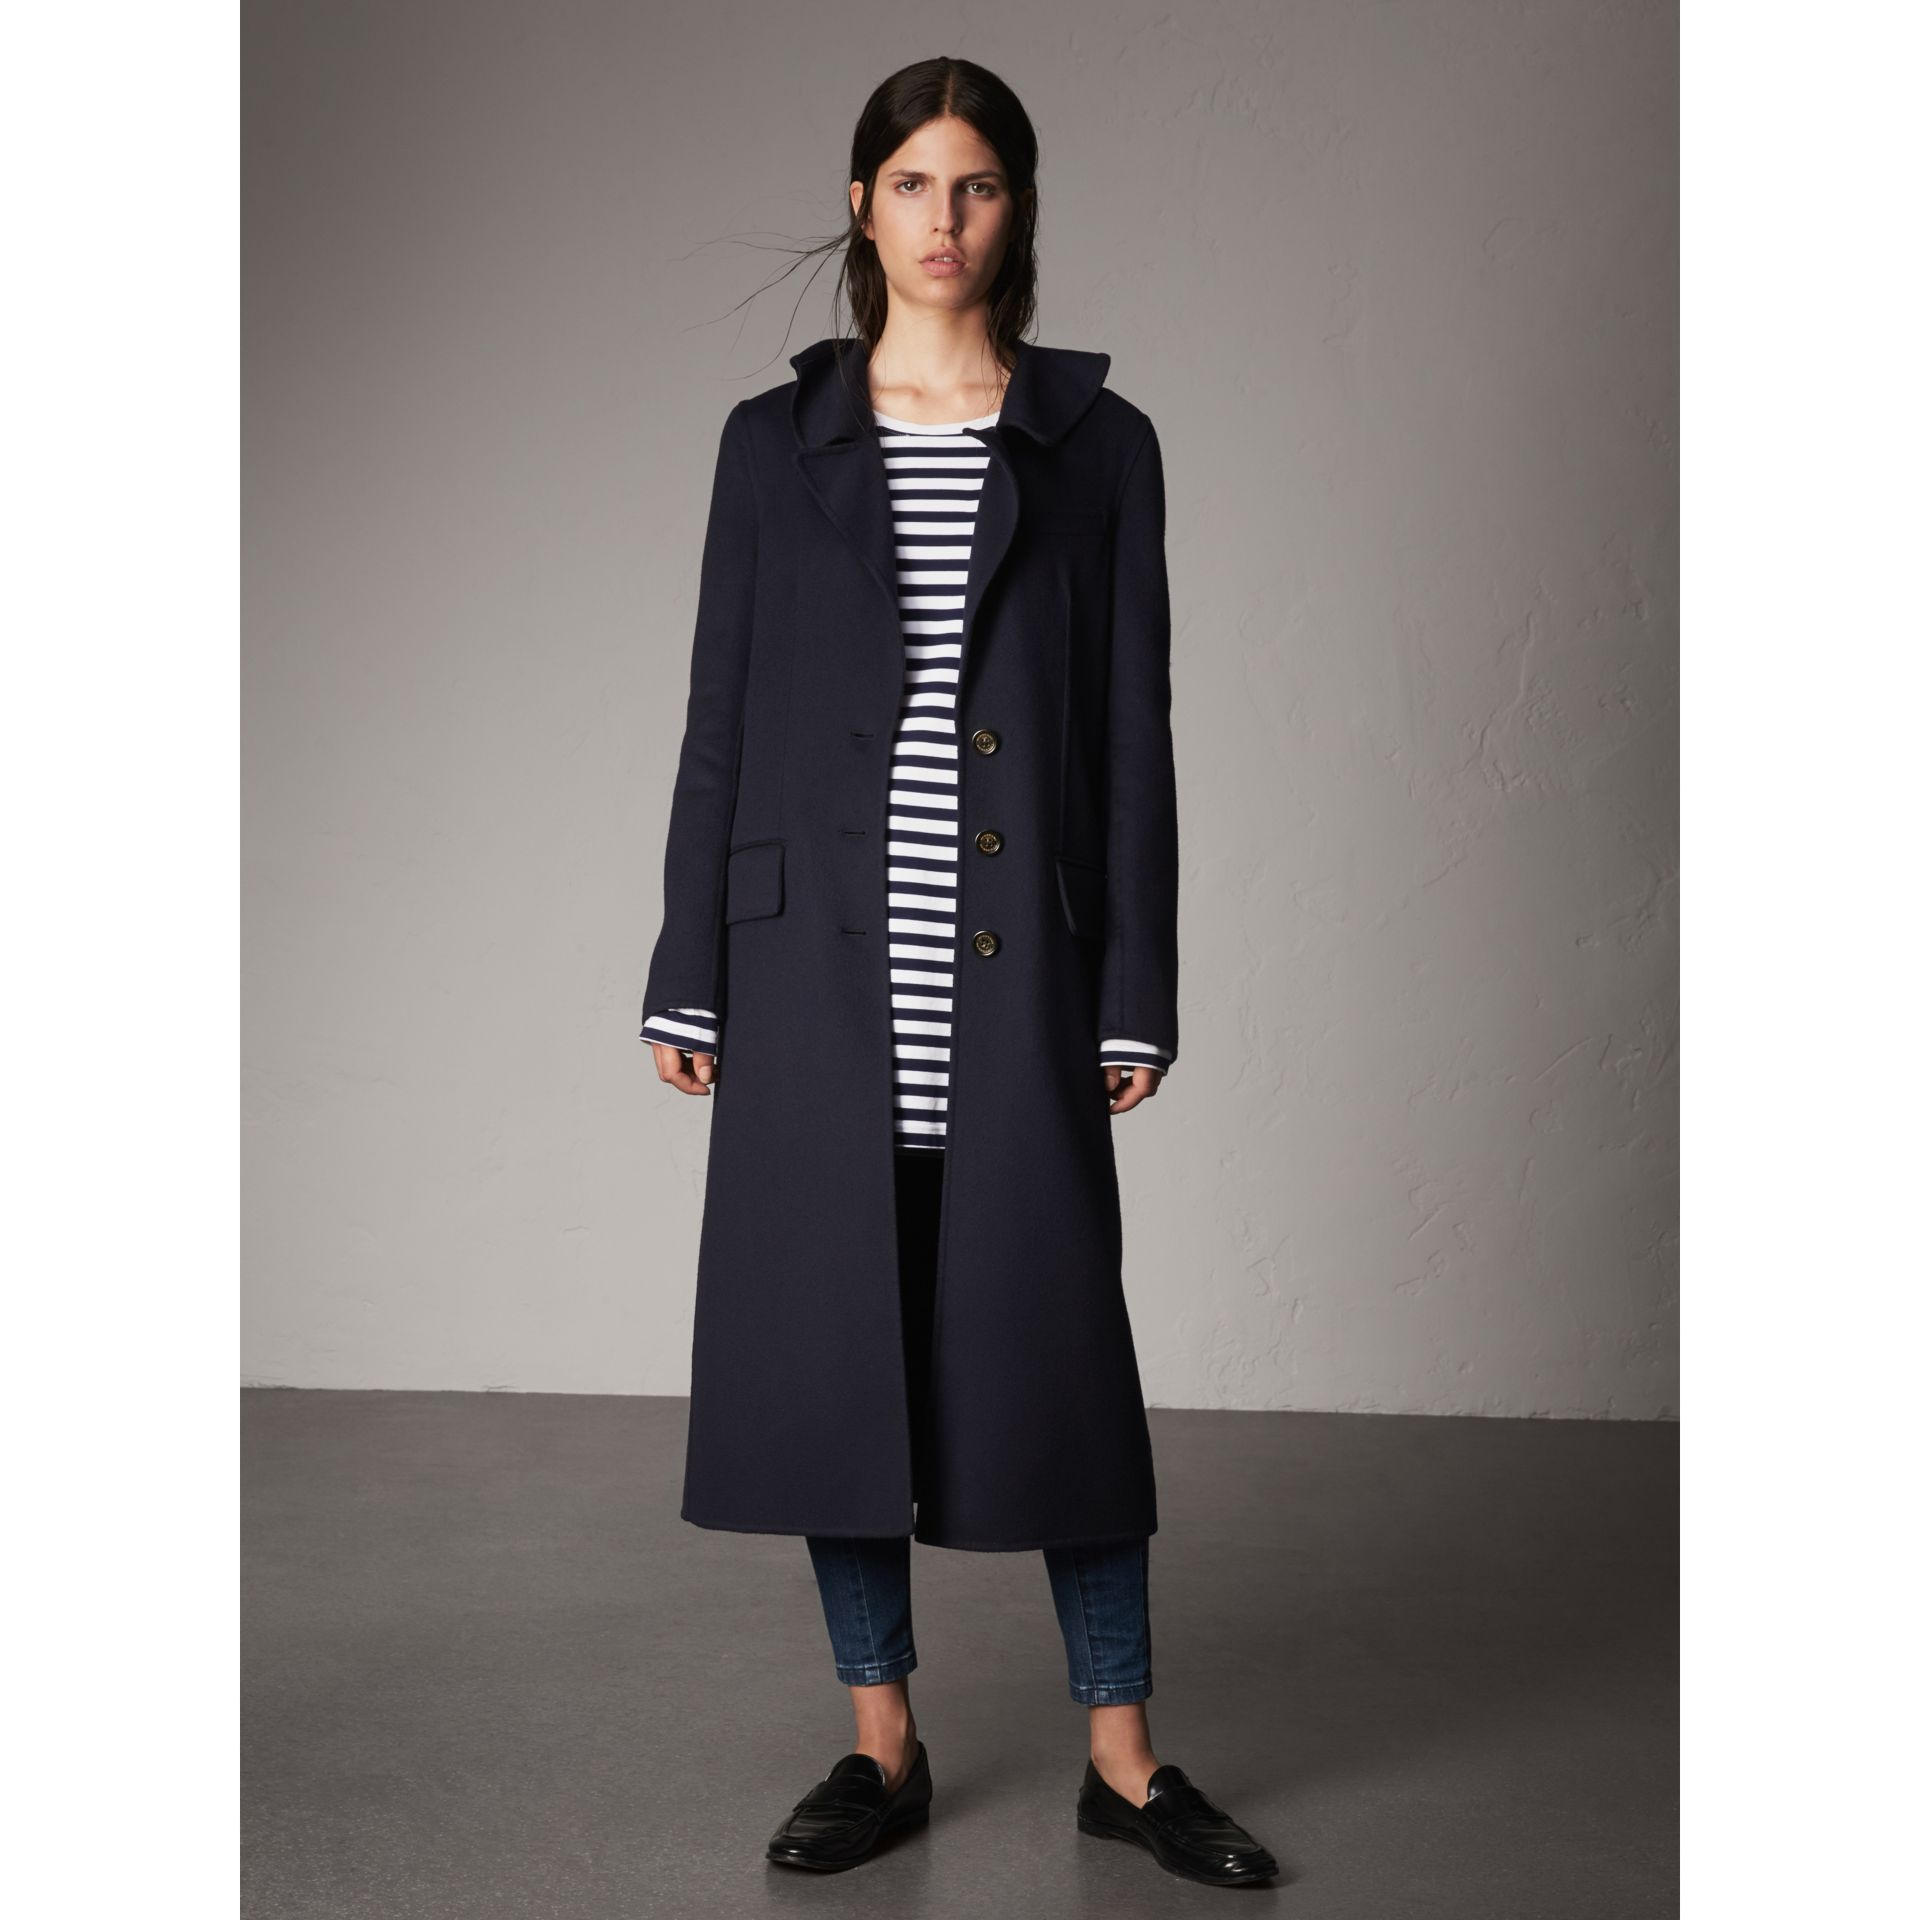 Ruffled Collar Wool Cashmere Coat in Navy - Women | Burberry Canada - gallery image 1